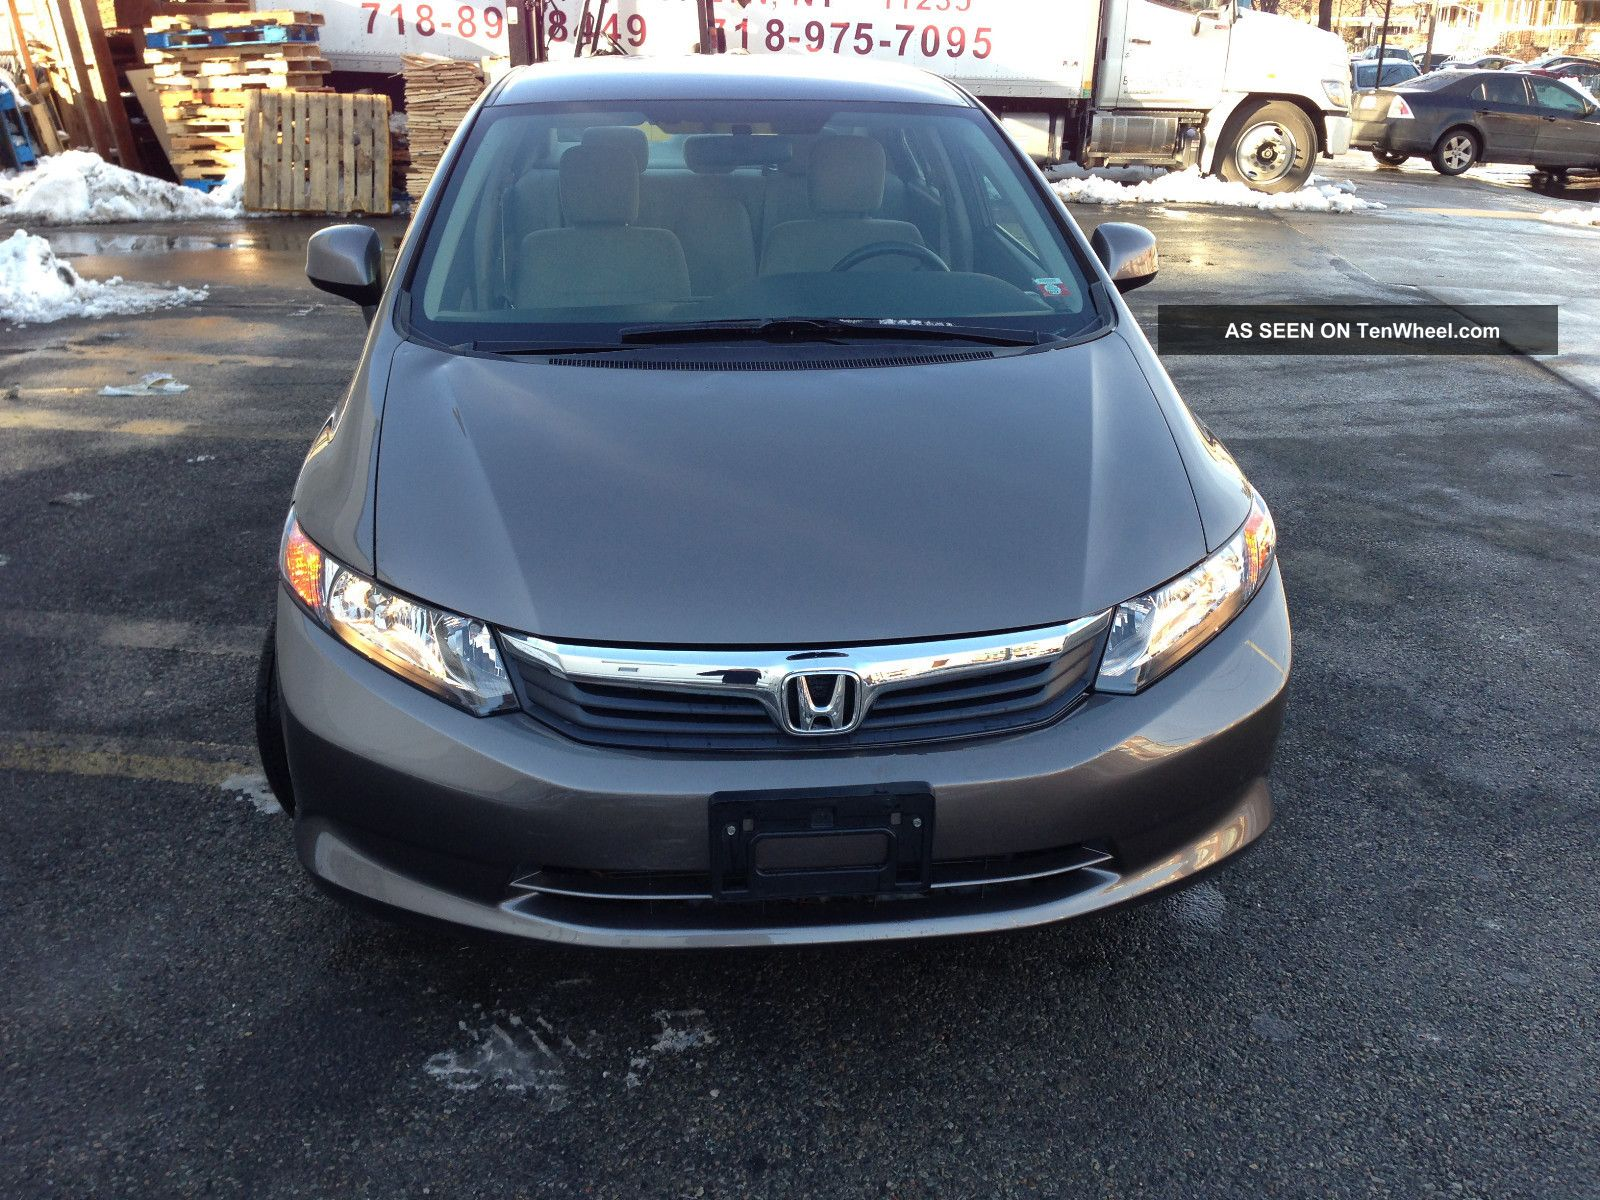 2012 honda civic lx sedan 4 door 1 8l sedan gas saver. Black Bedroom Furniture Sets. Home Design Ideas